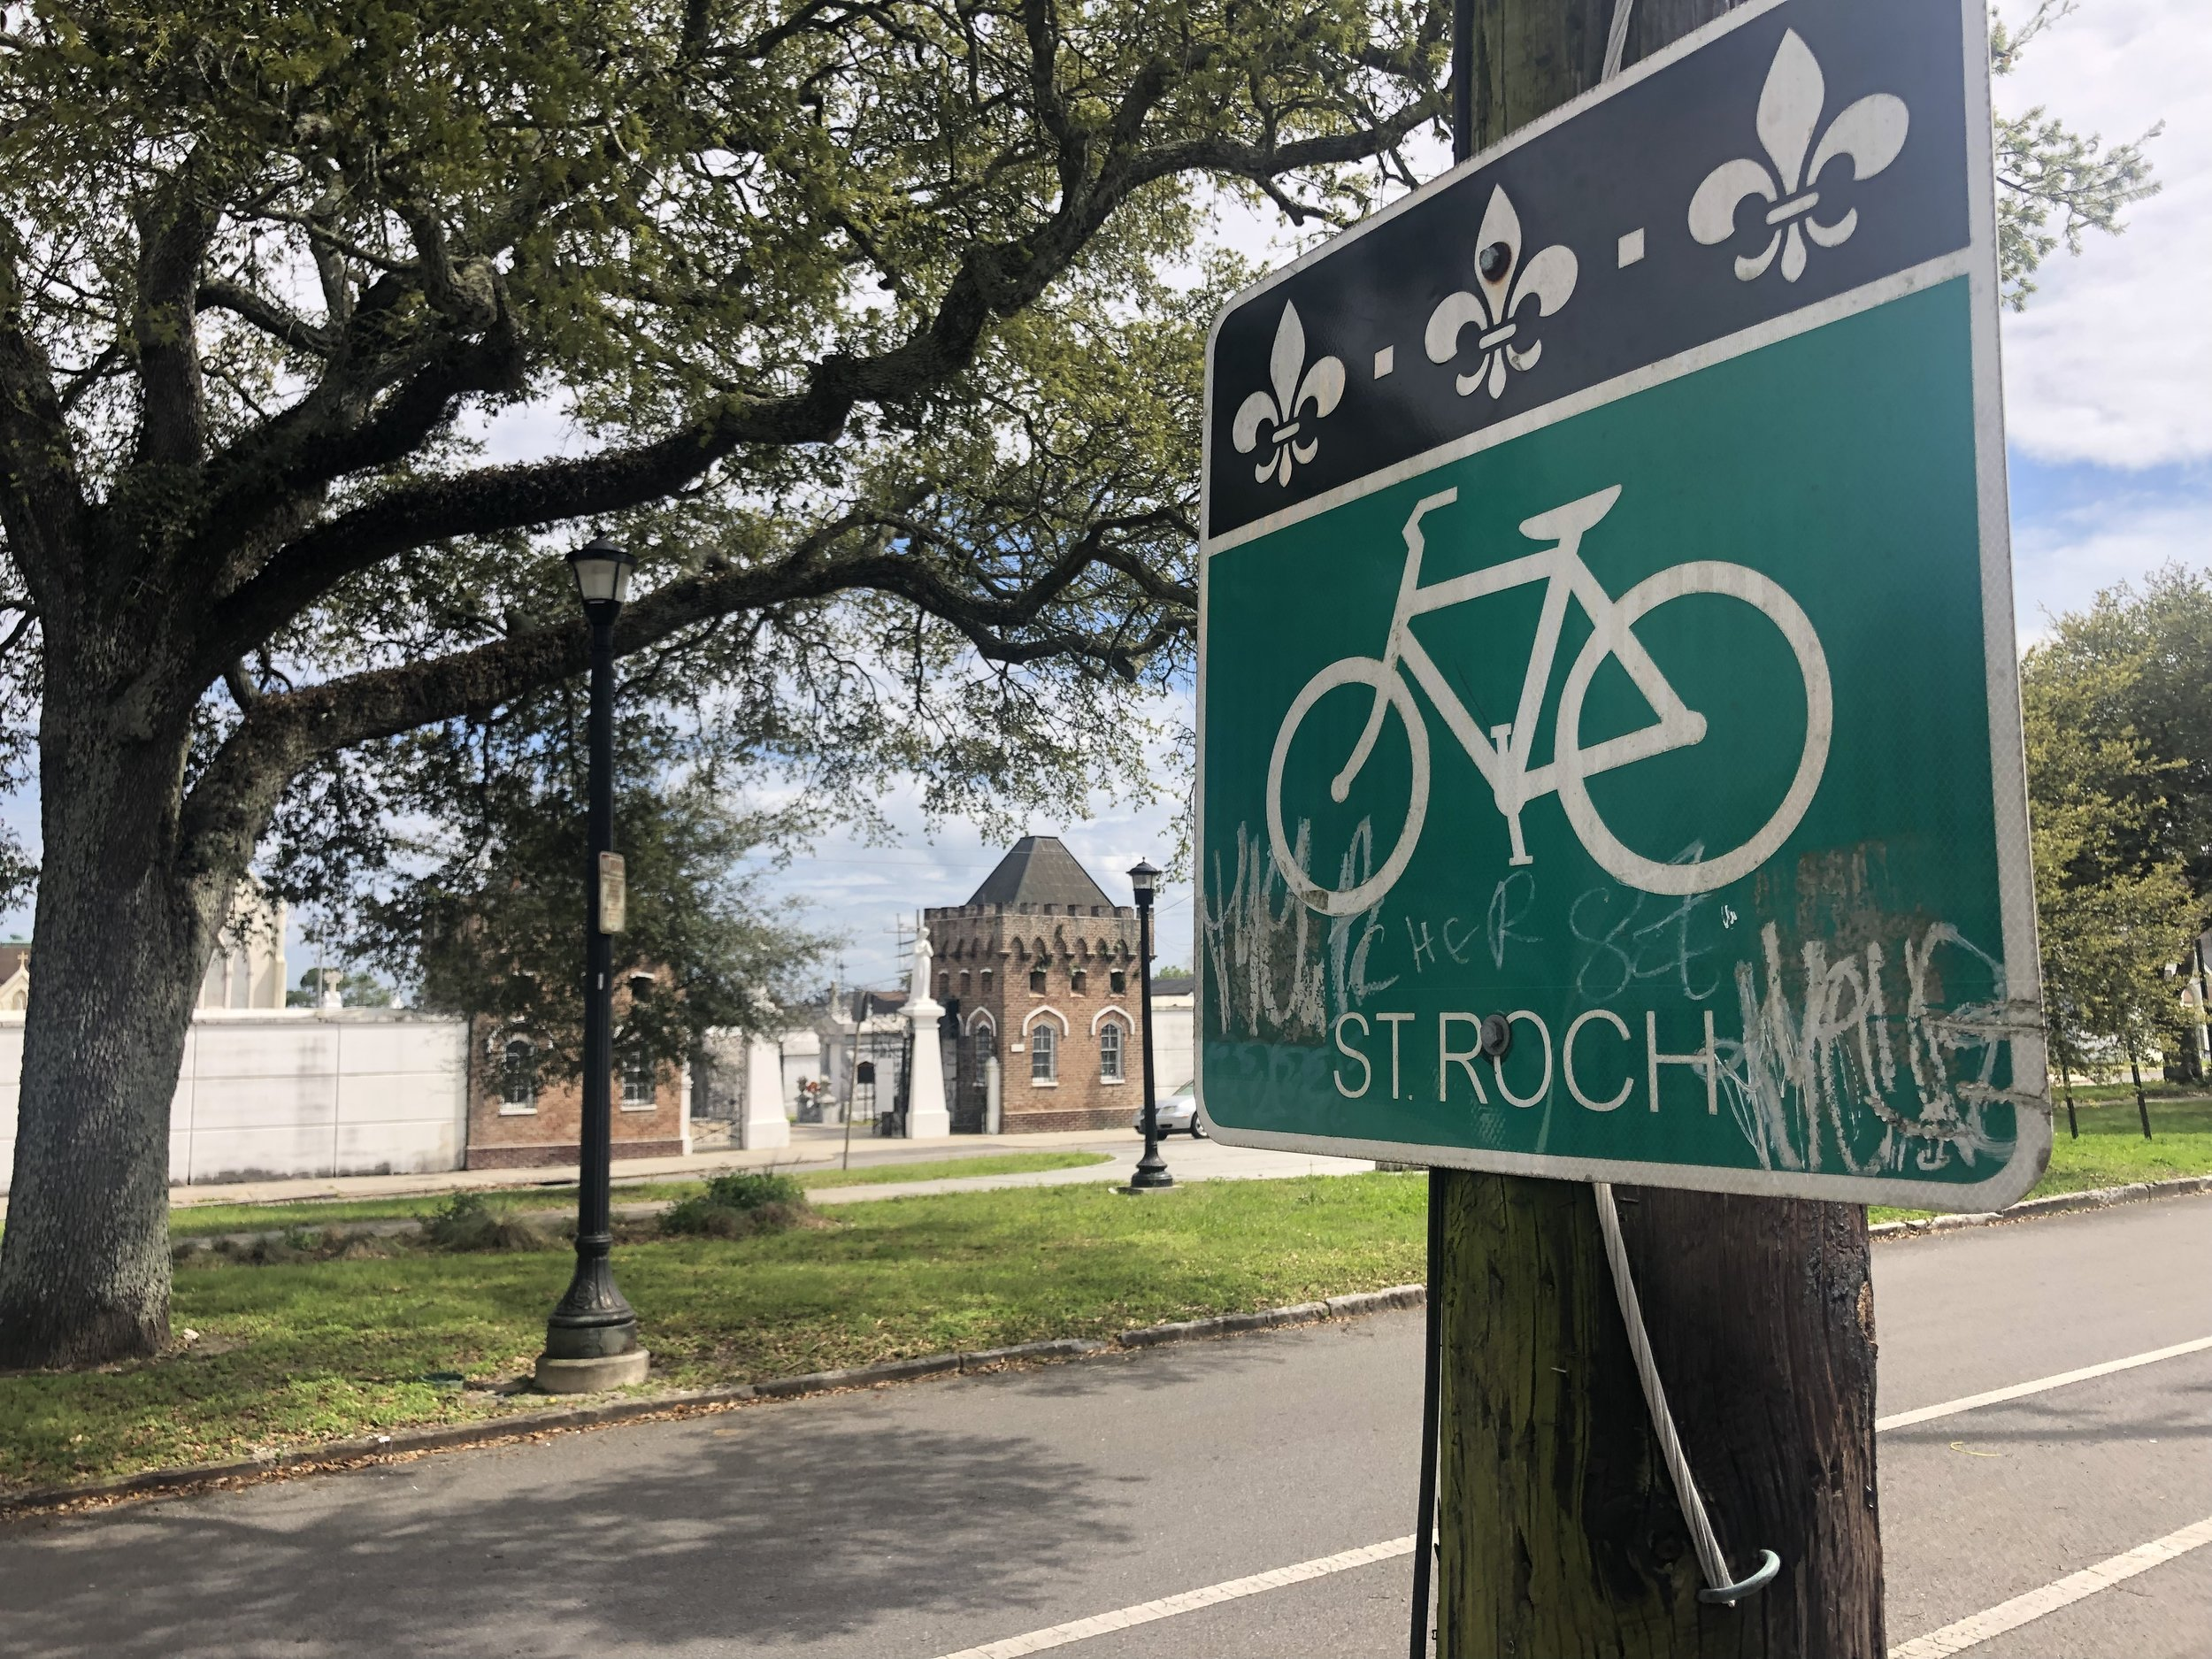 st roch bike lane